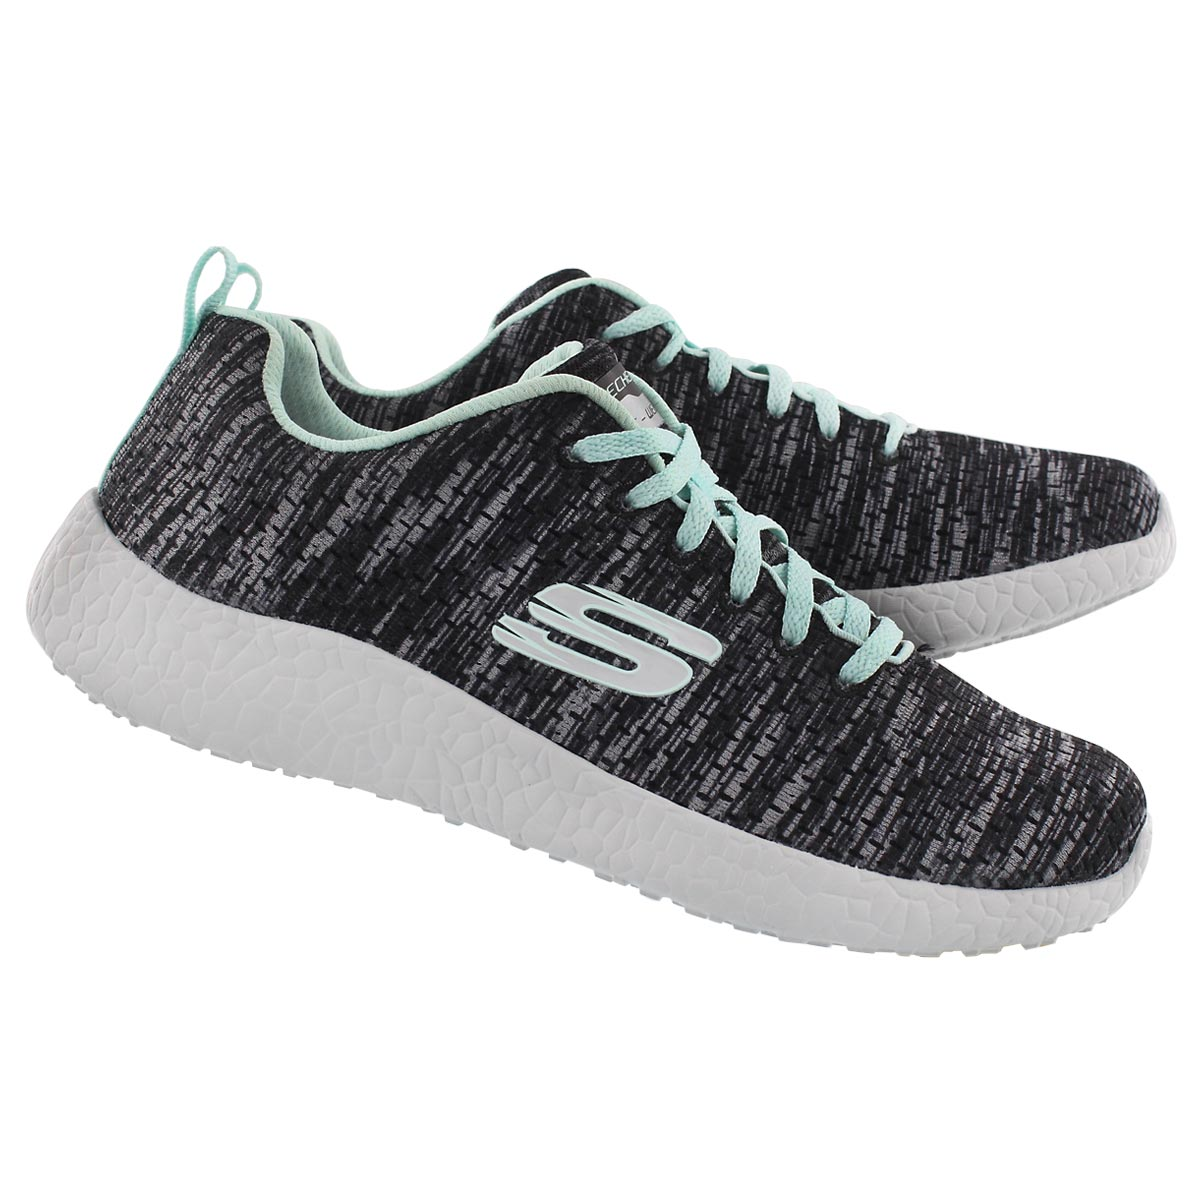 Lds New Influence blk/blu sneaker